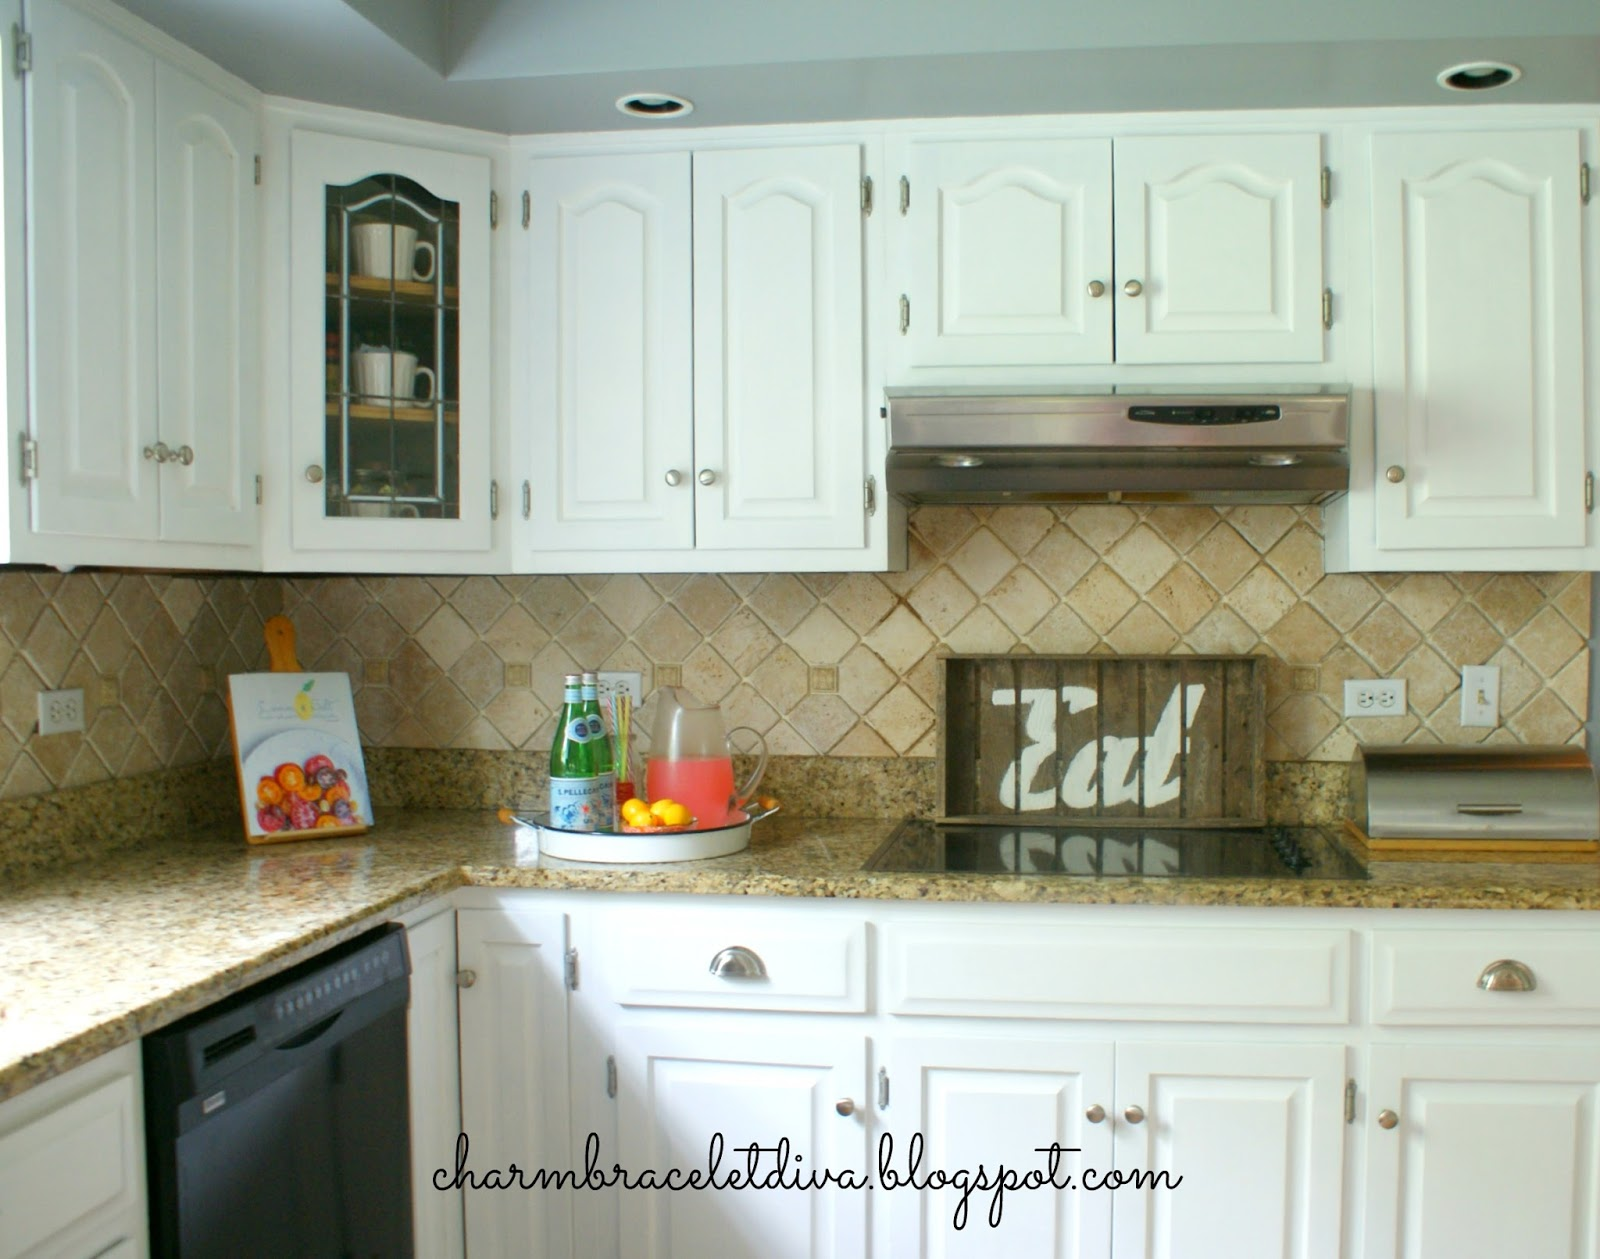 Diy Painting Kitchen Cabinets Antique White Our Hopeful Home Diy White Modern Farmhouse Painted